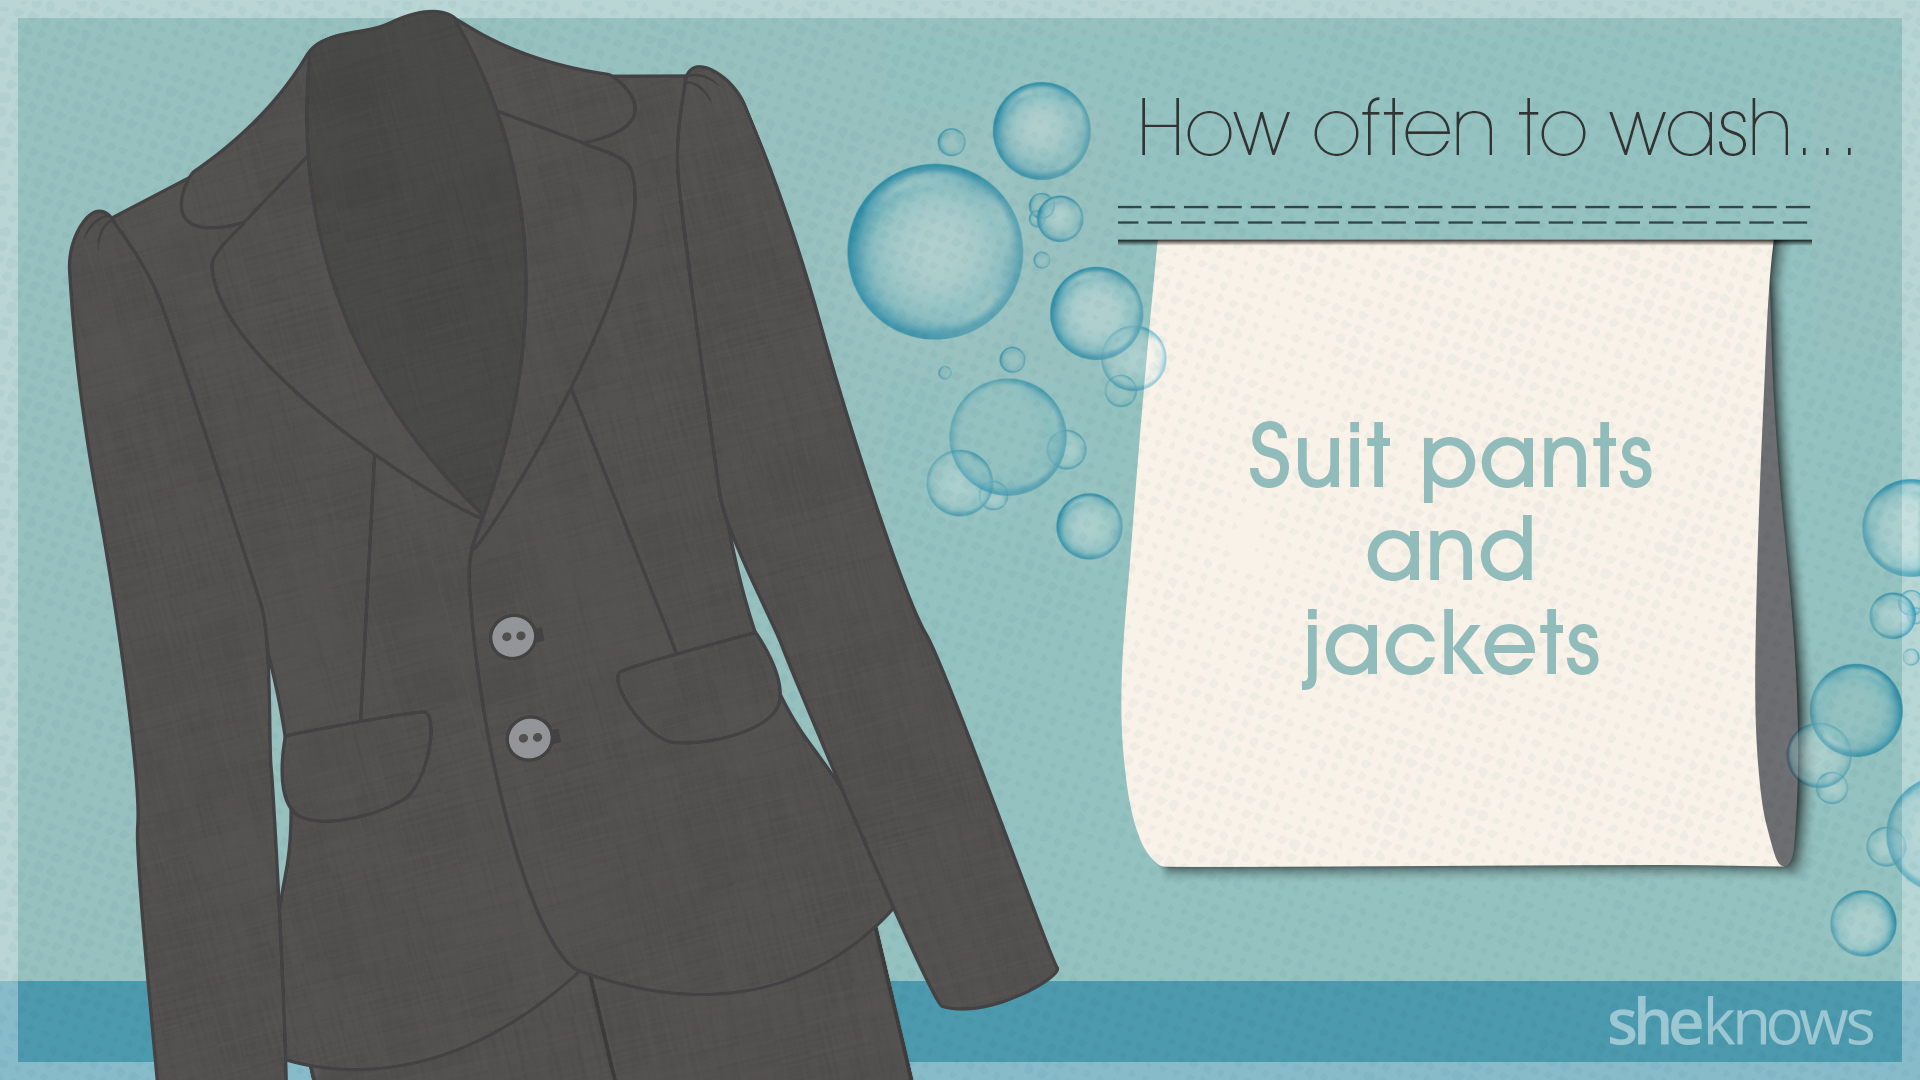 You're probably washing your clothes too much: Suits